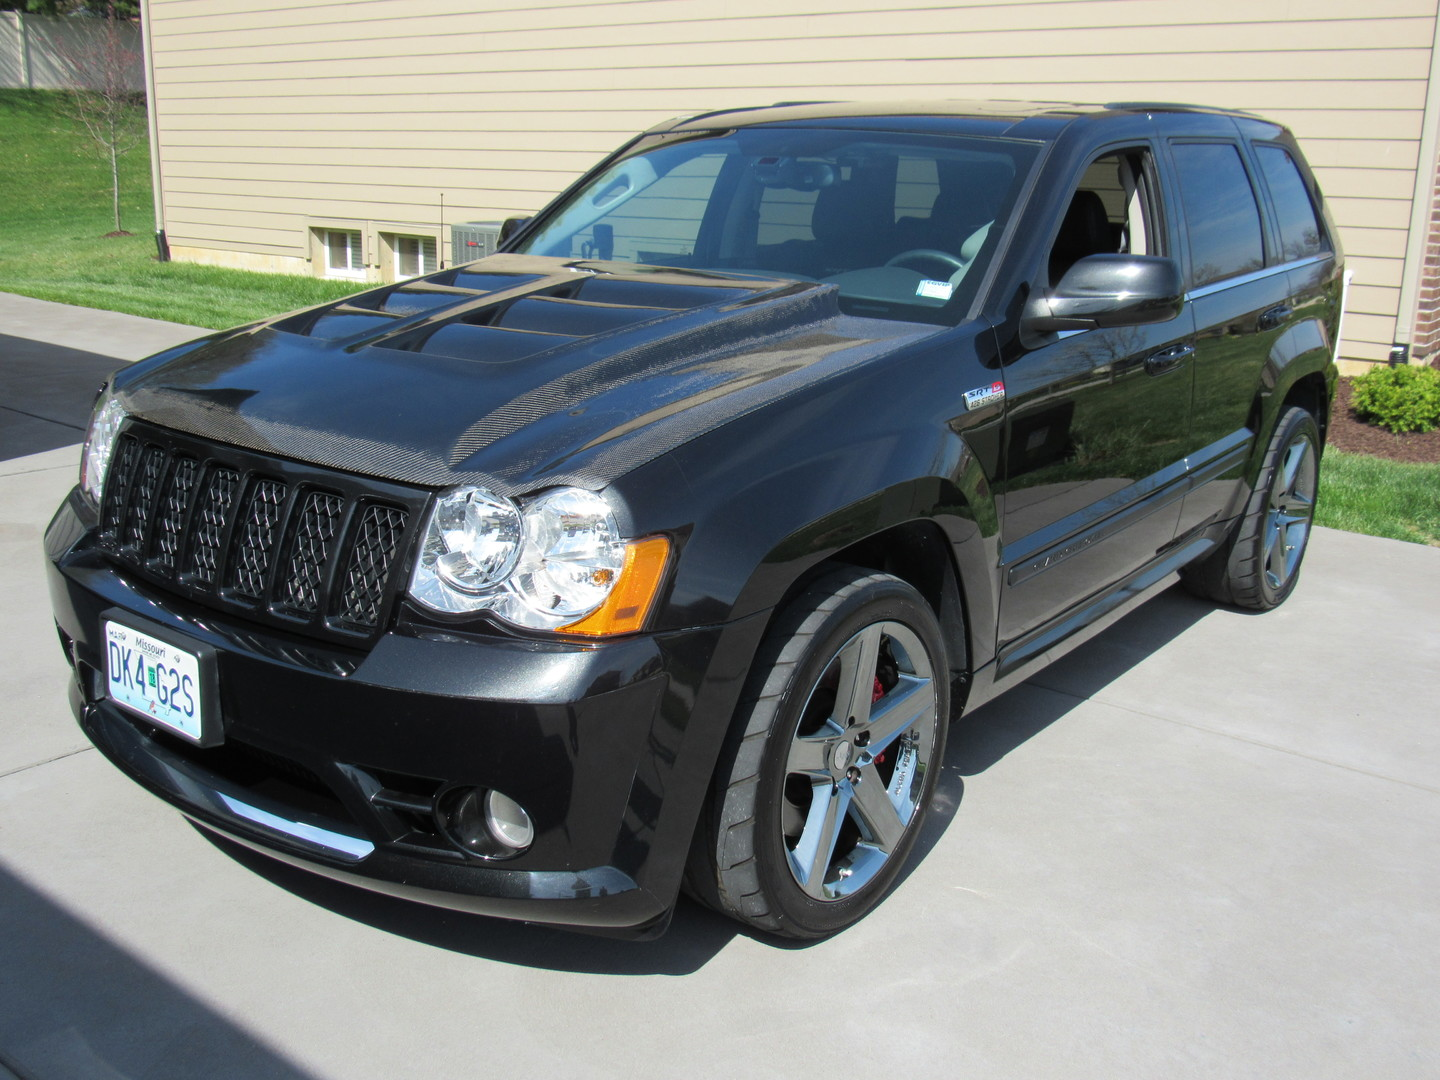 2009 Jeep Grand Cherokee Srt 8 St Charles Missouri